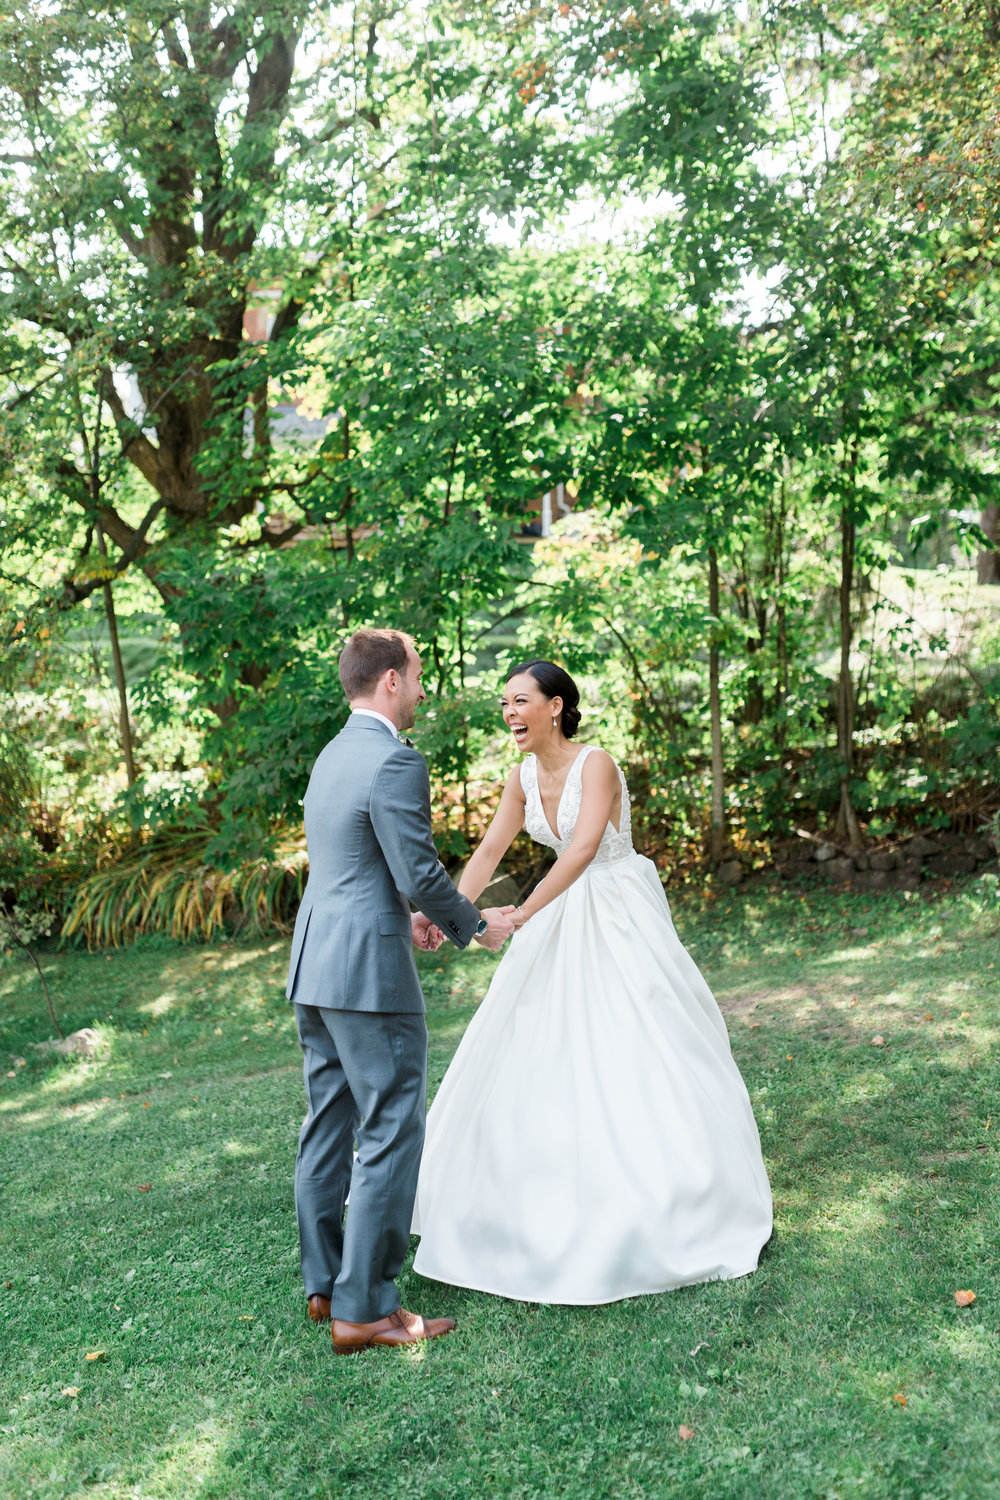 Alton Mills Wedding - First Look-11.jpg